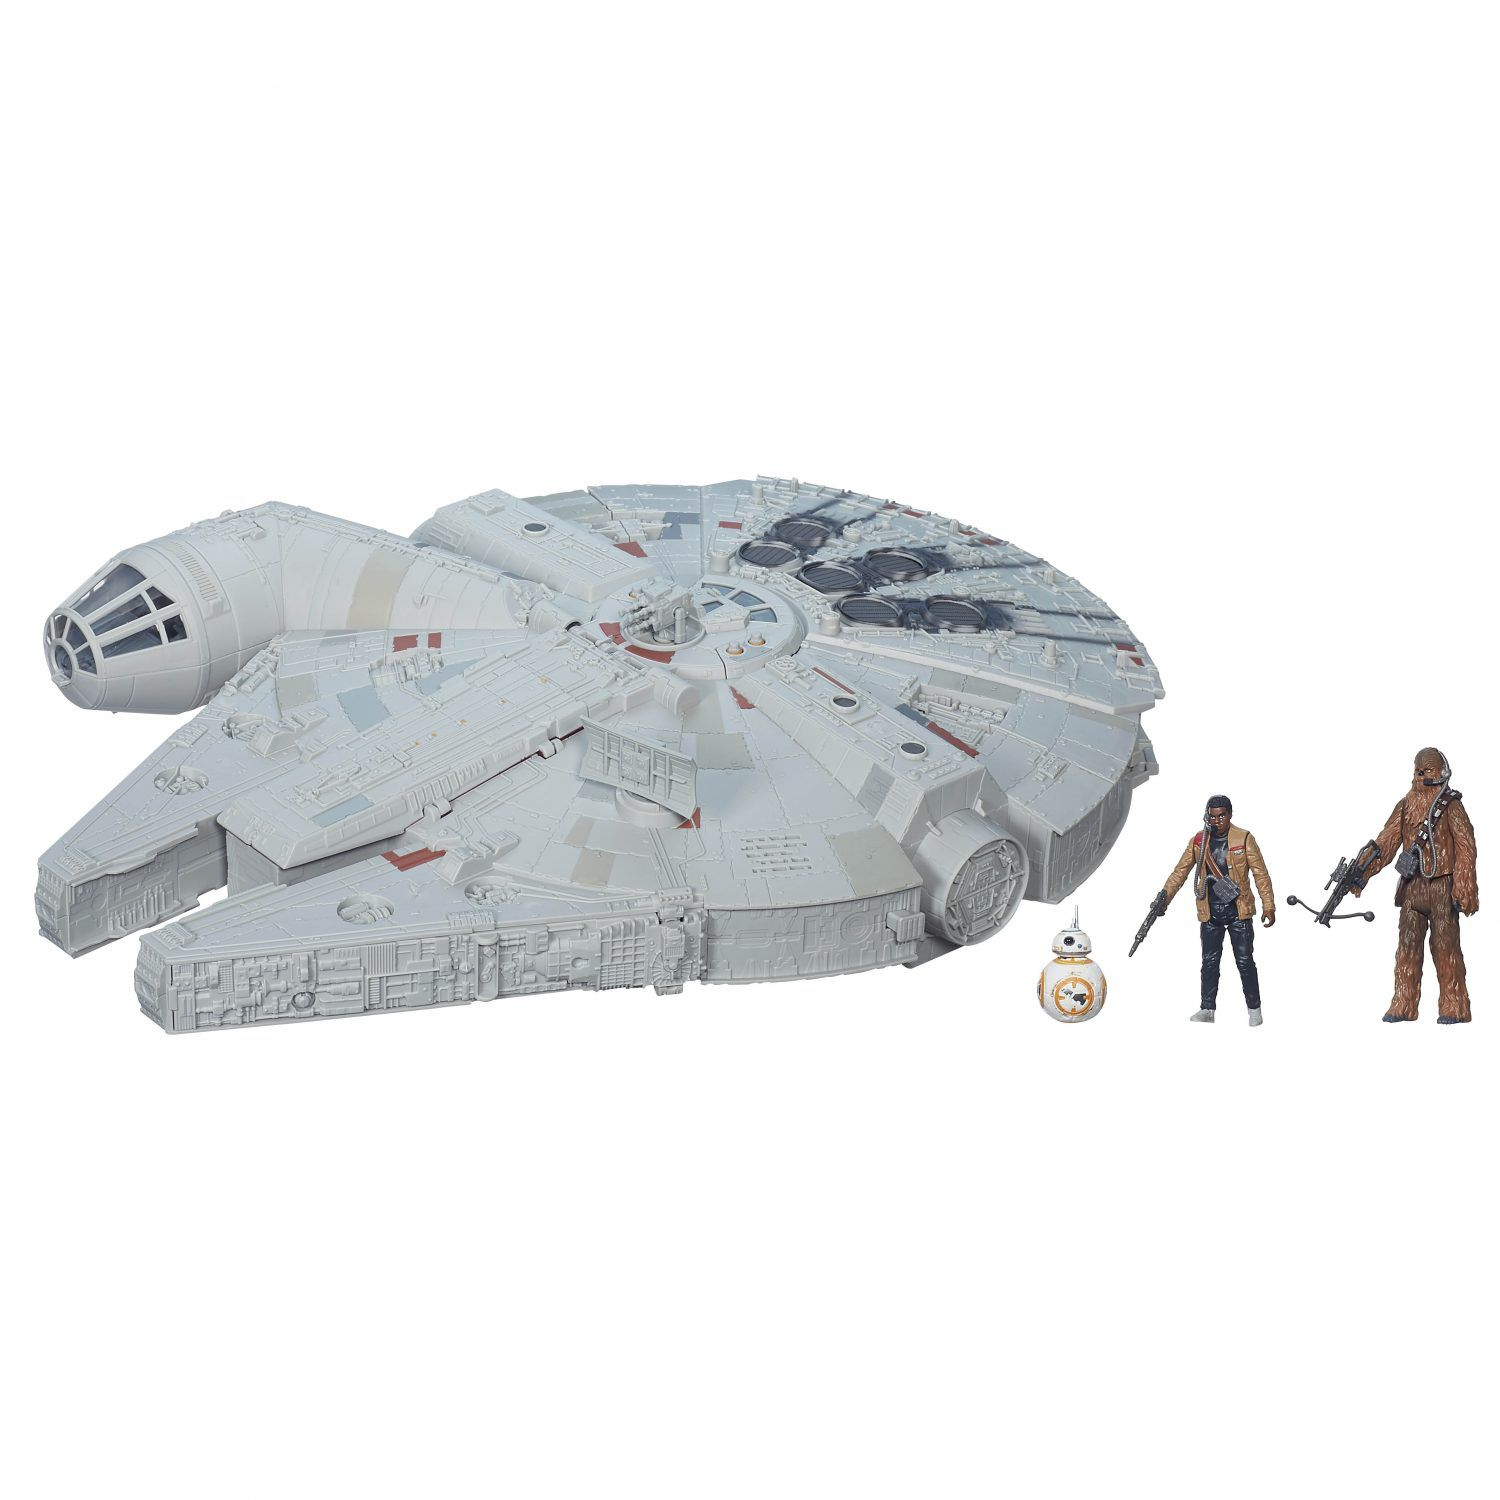 Star Wars: The Force Awakens- Millenium Falcon- Hasbro- B3678